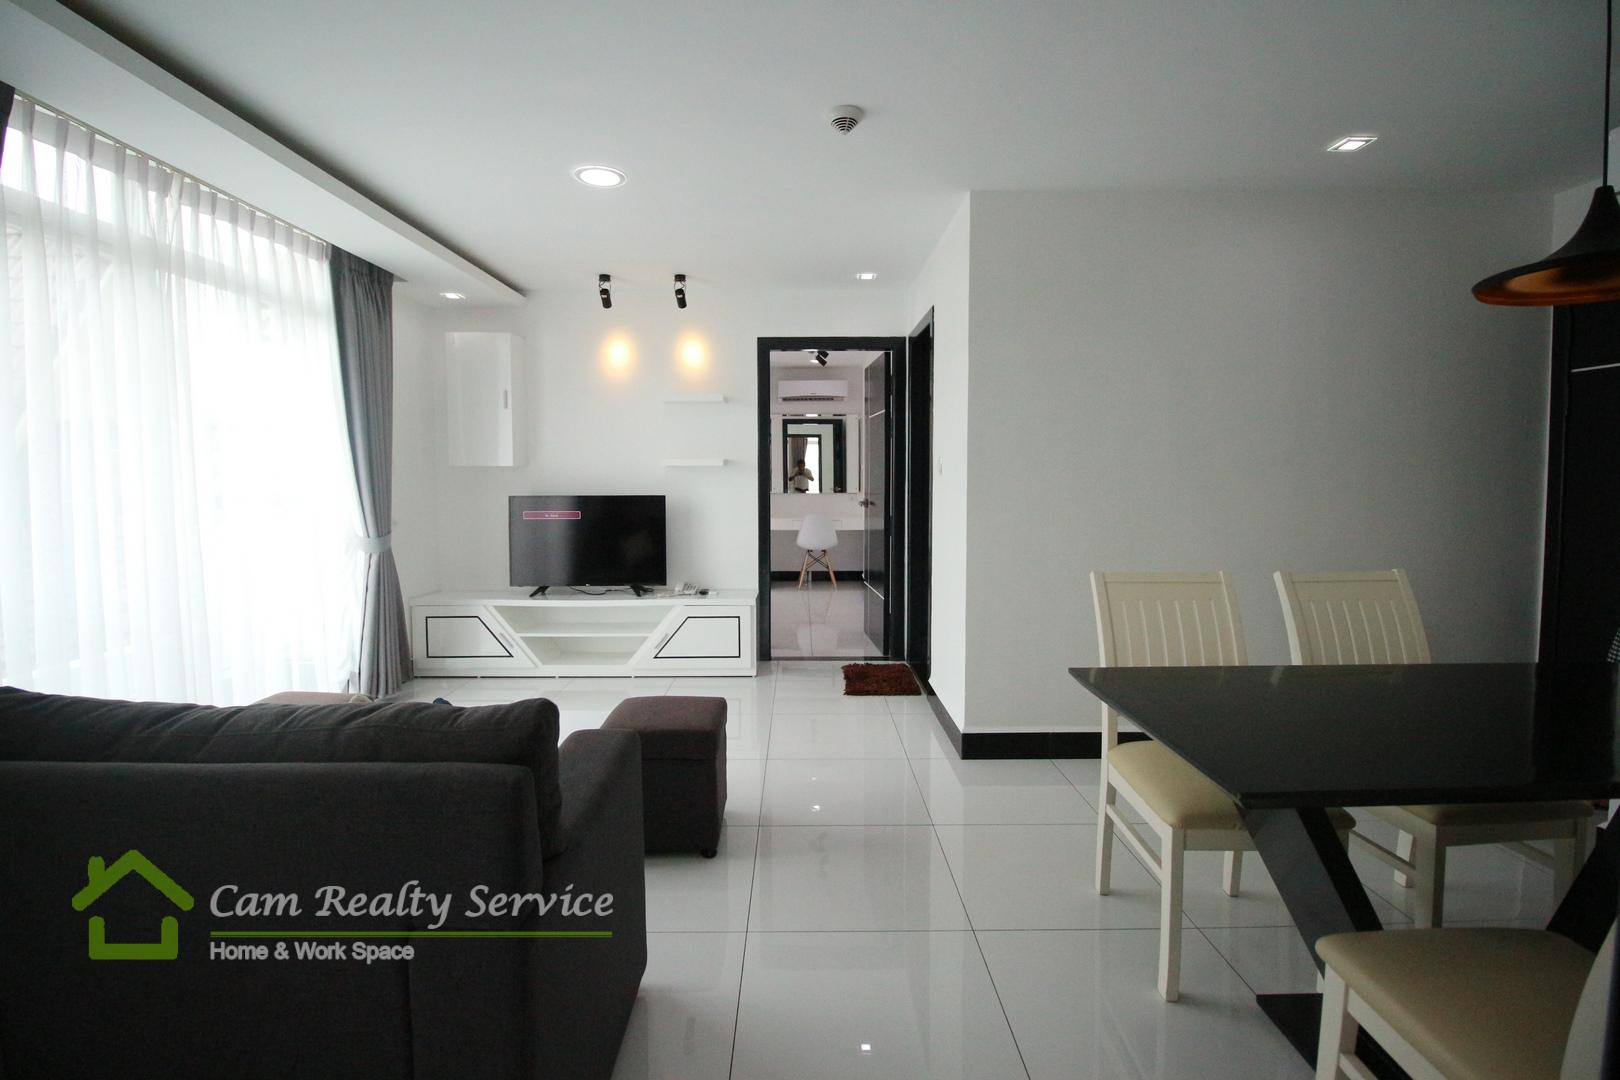 BKK3 area| Modern style 2 bedrooms serviced apartment available for rent| 800$/month up| Pool, gym, steam & sauna